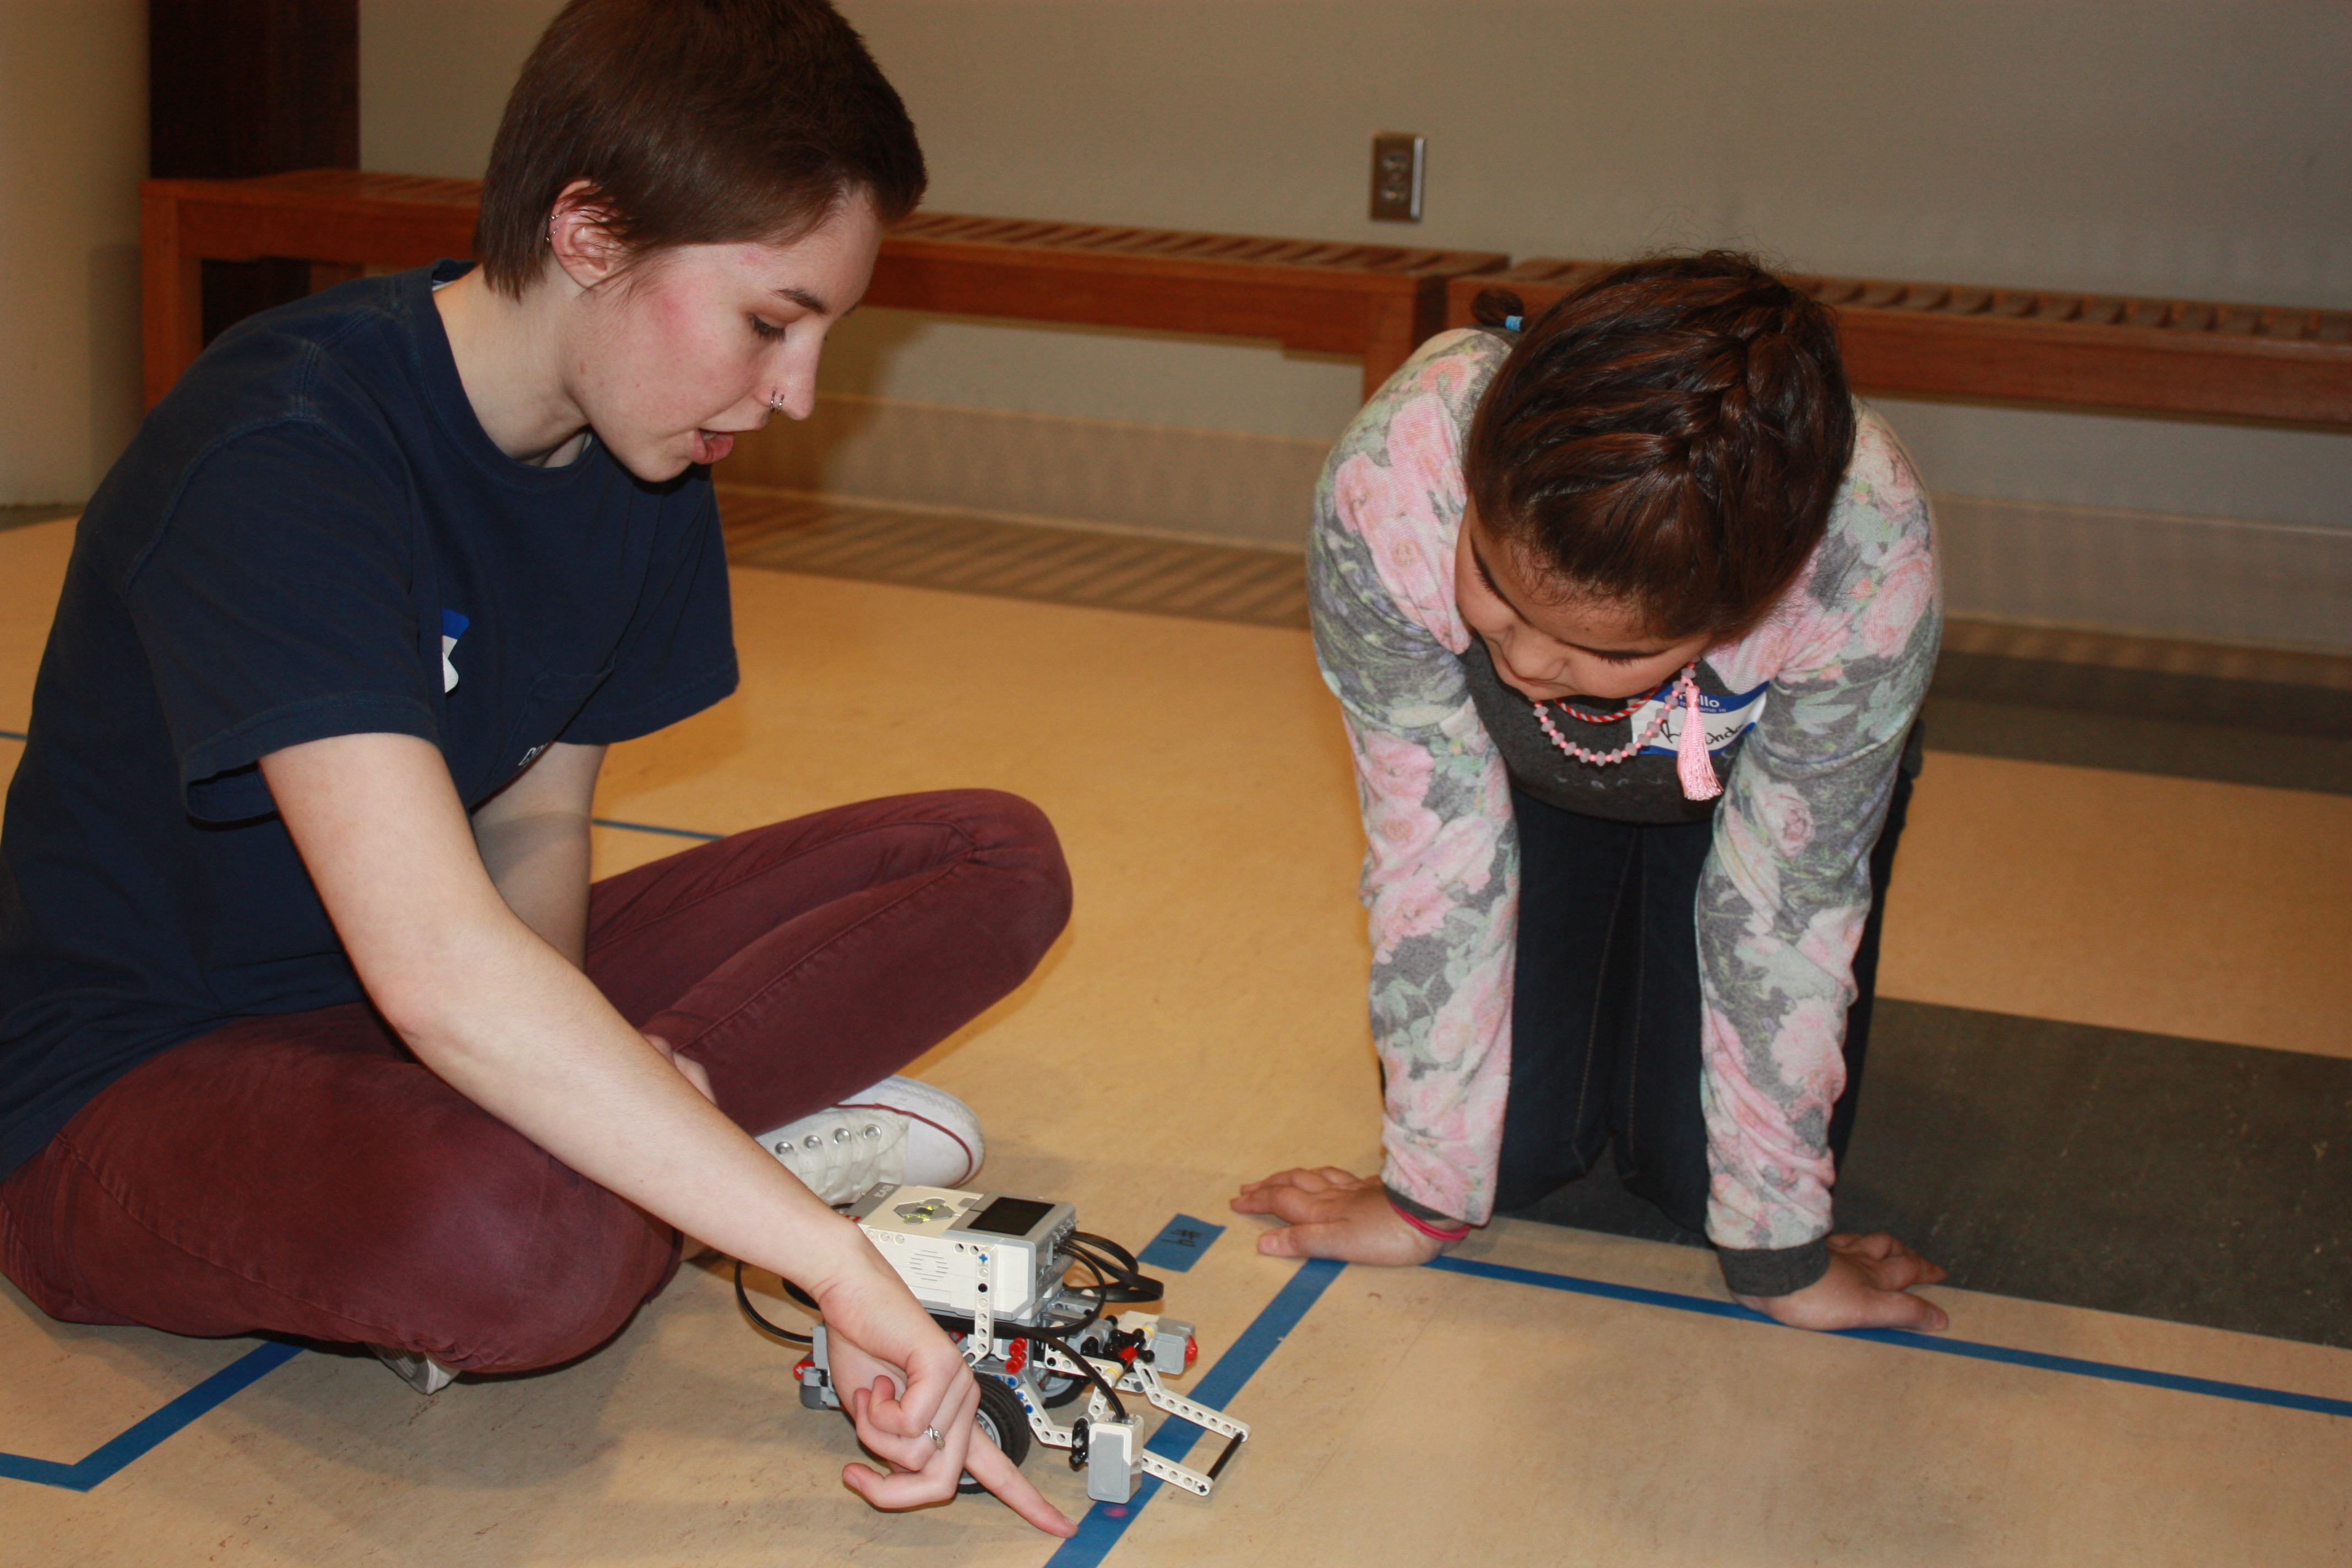 Computing for All member Allison Buckley helps a Girl Scout program a robot.